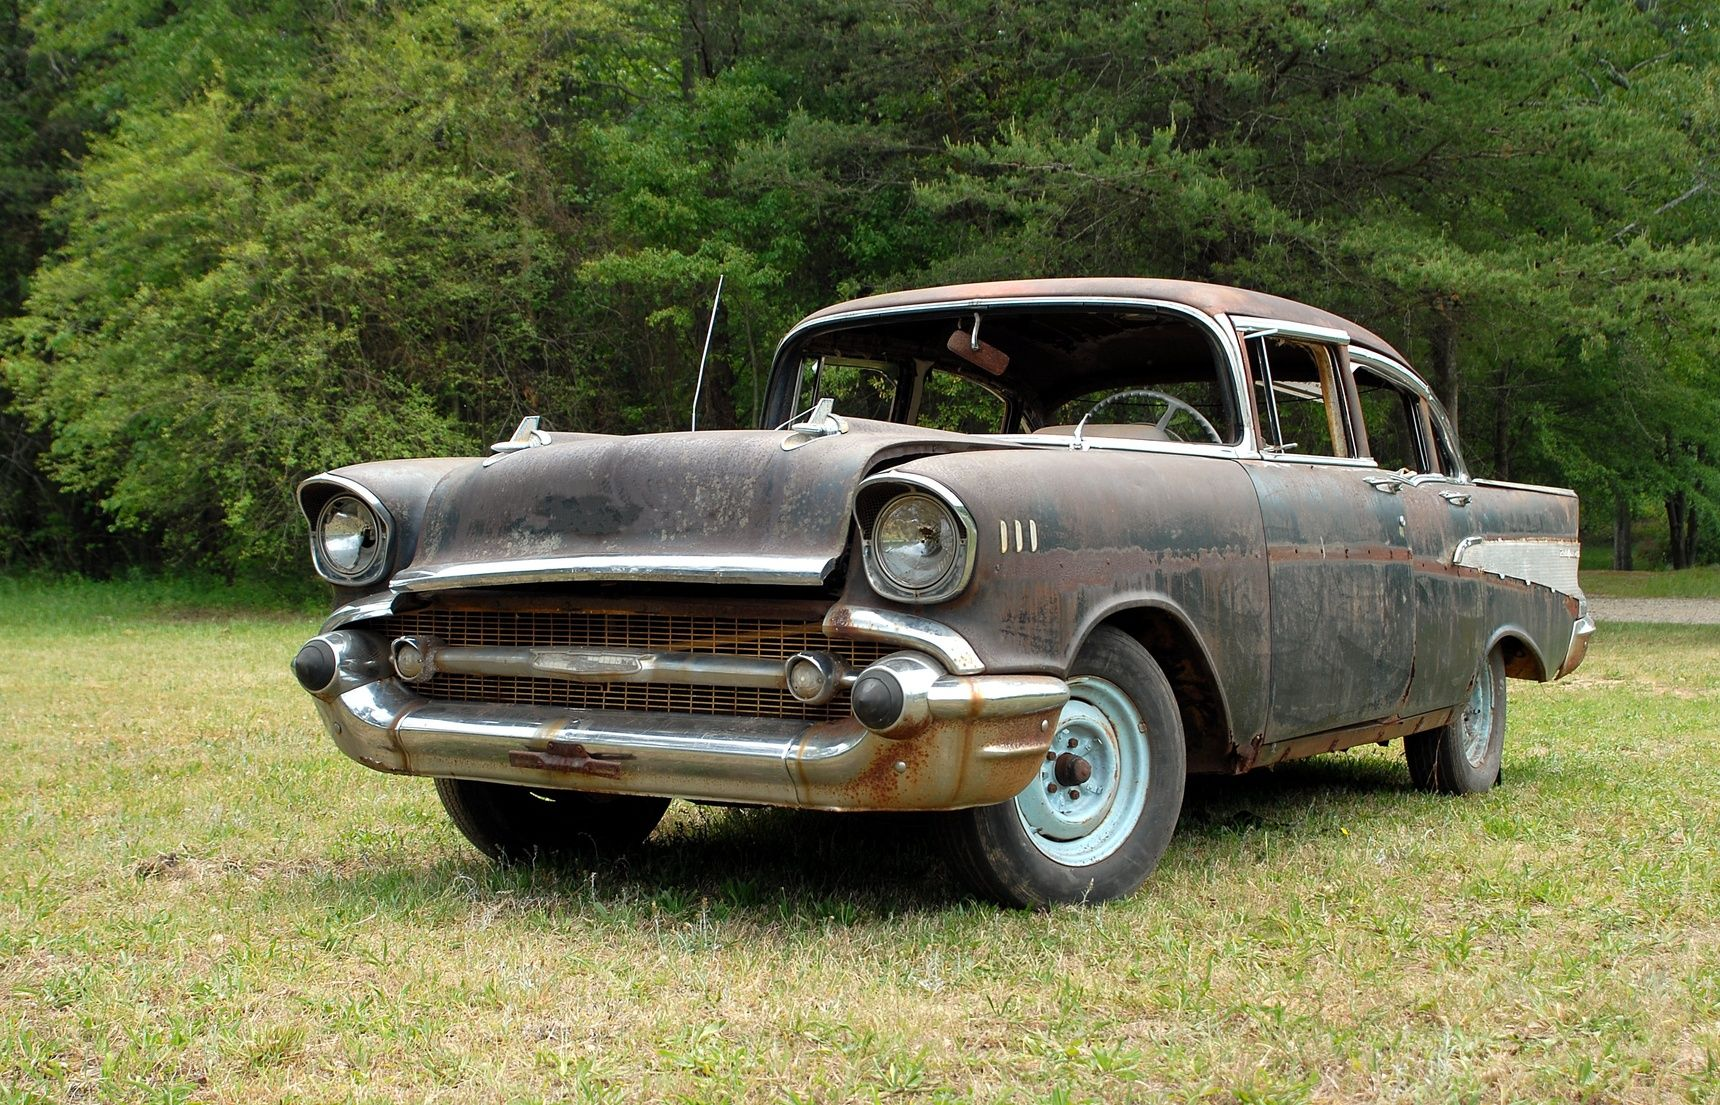 1957 Chevy Car, Vintage cars, Buy used cars